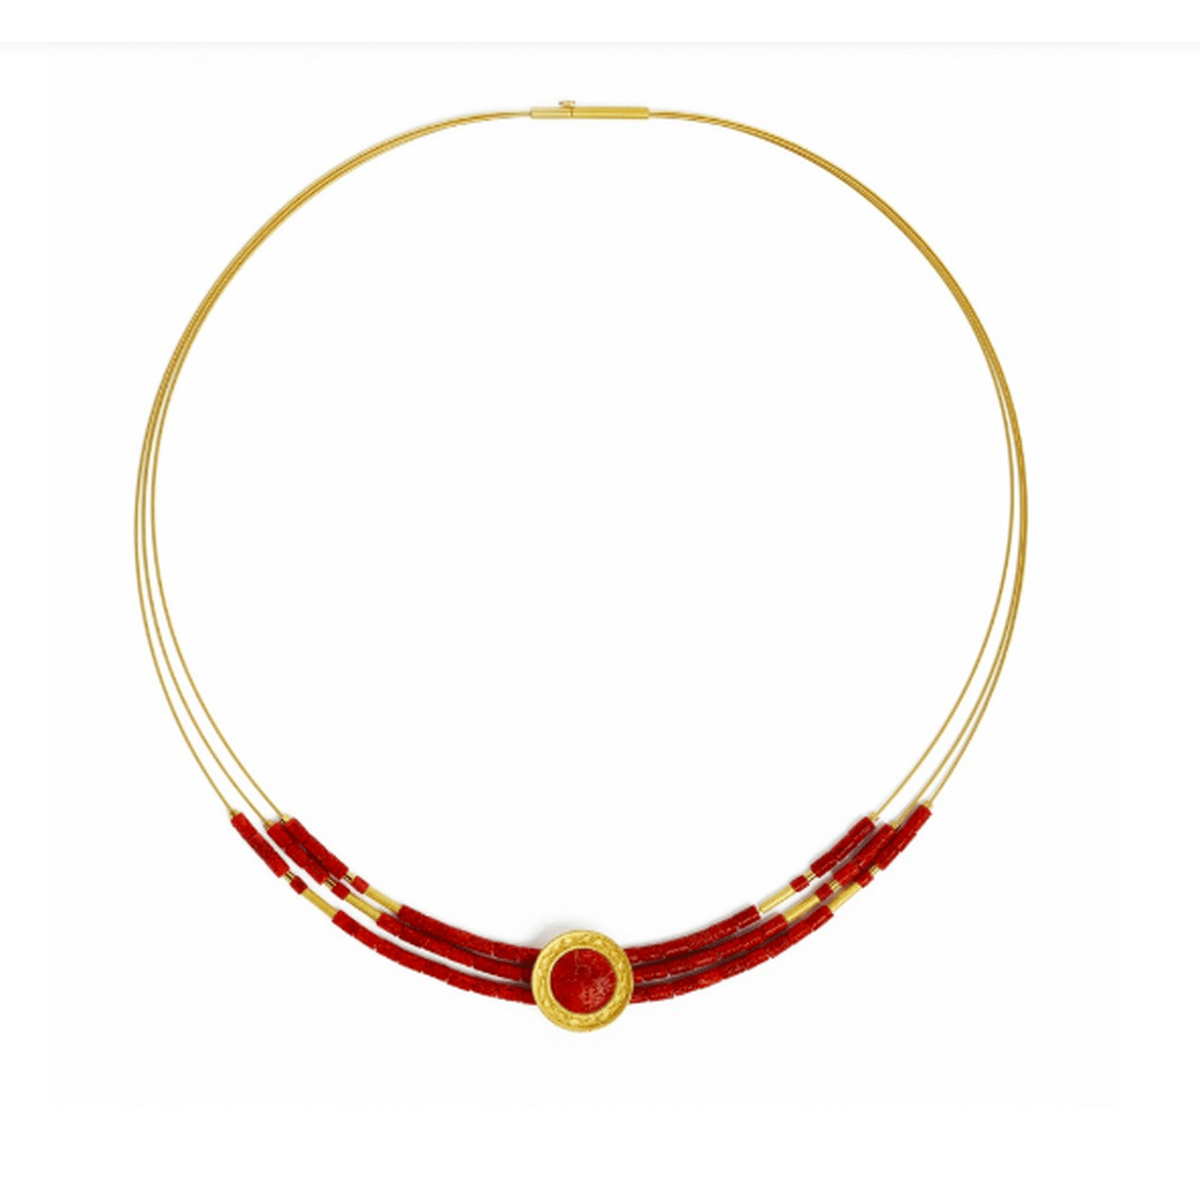 Infenas Red Coral Necklace - 84918296-Bernd Wolf-Renee Taylor Gallery